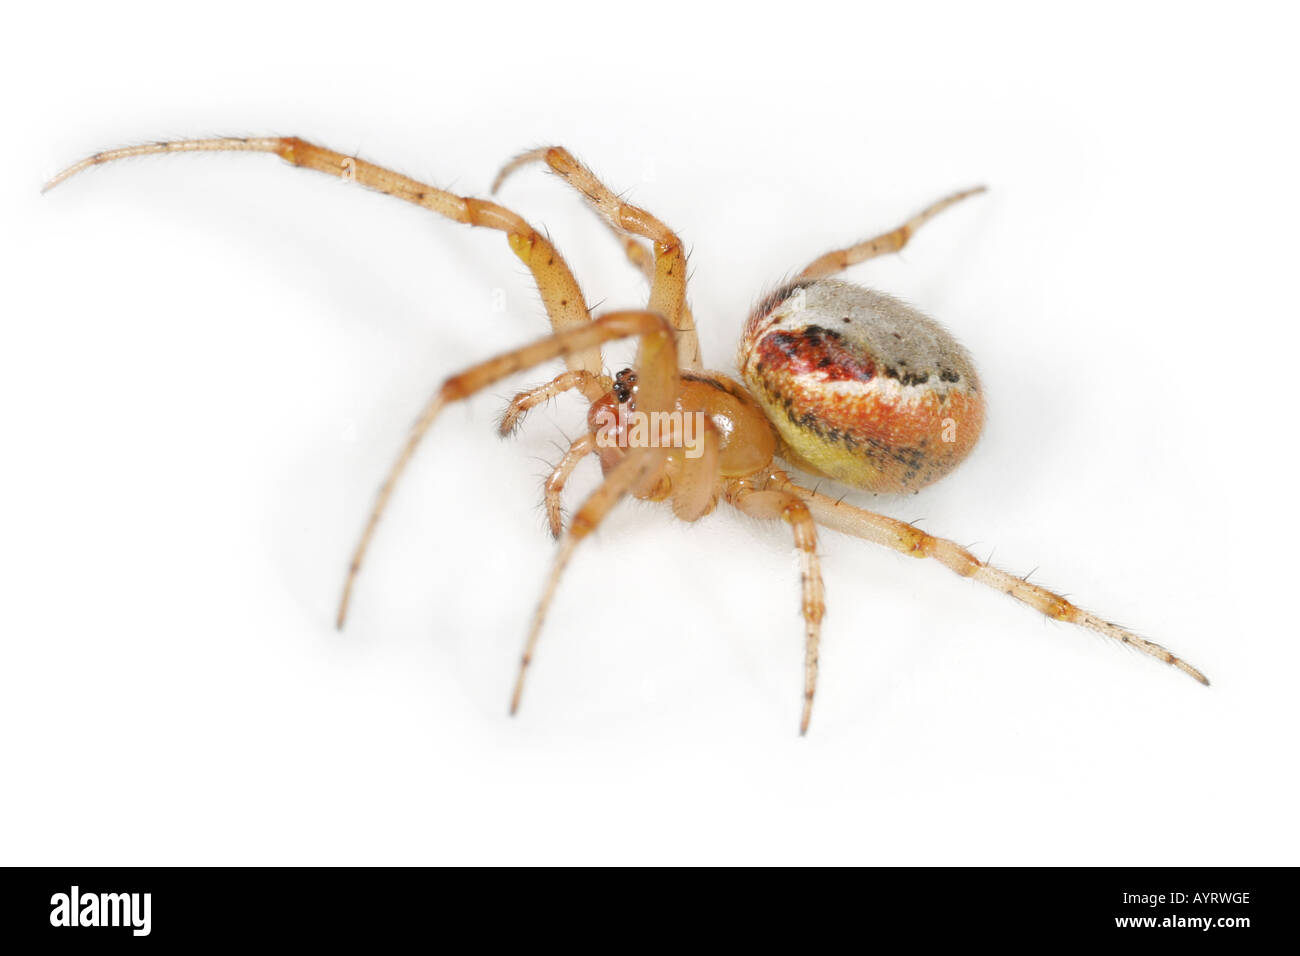 Zygiella Atrica spider on white background Stock Photo